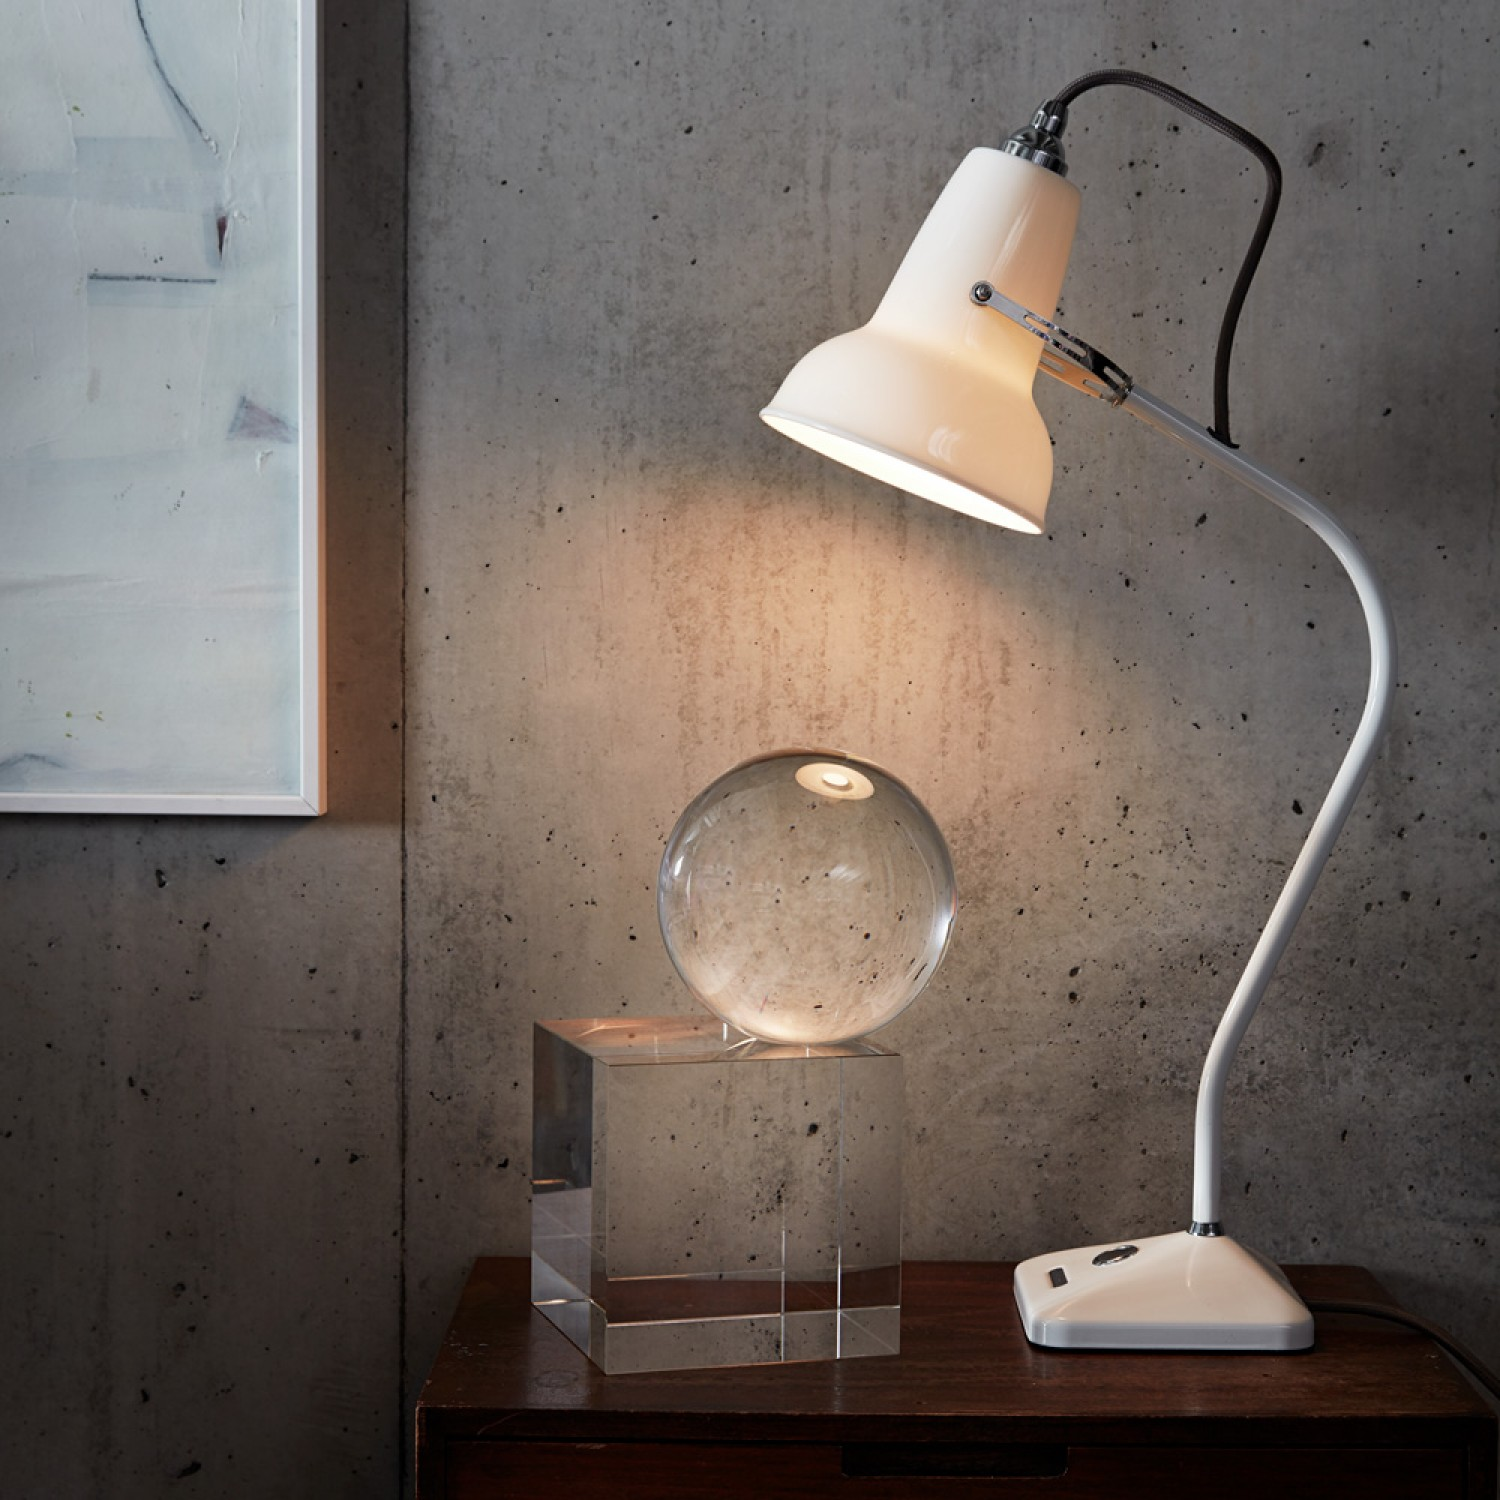 heals-anglepoise-original-1227-ceramic-table-lamp